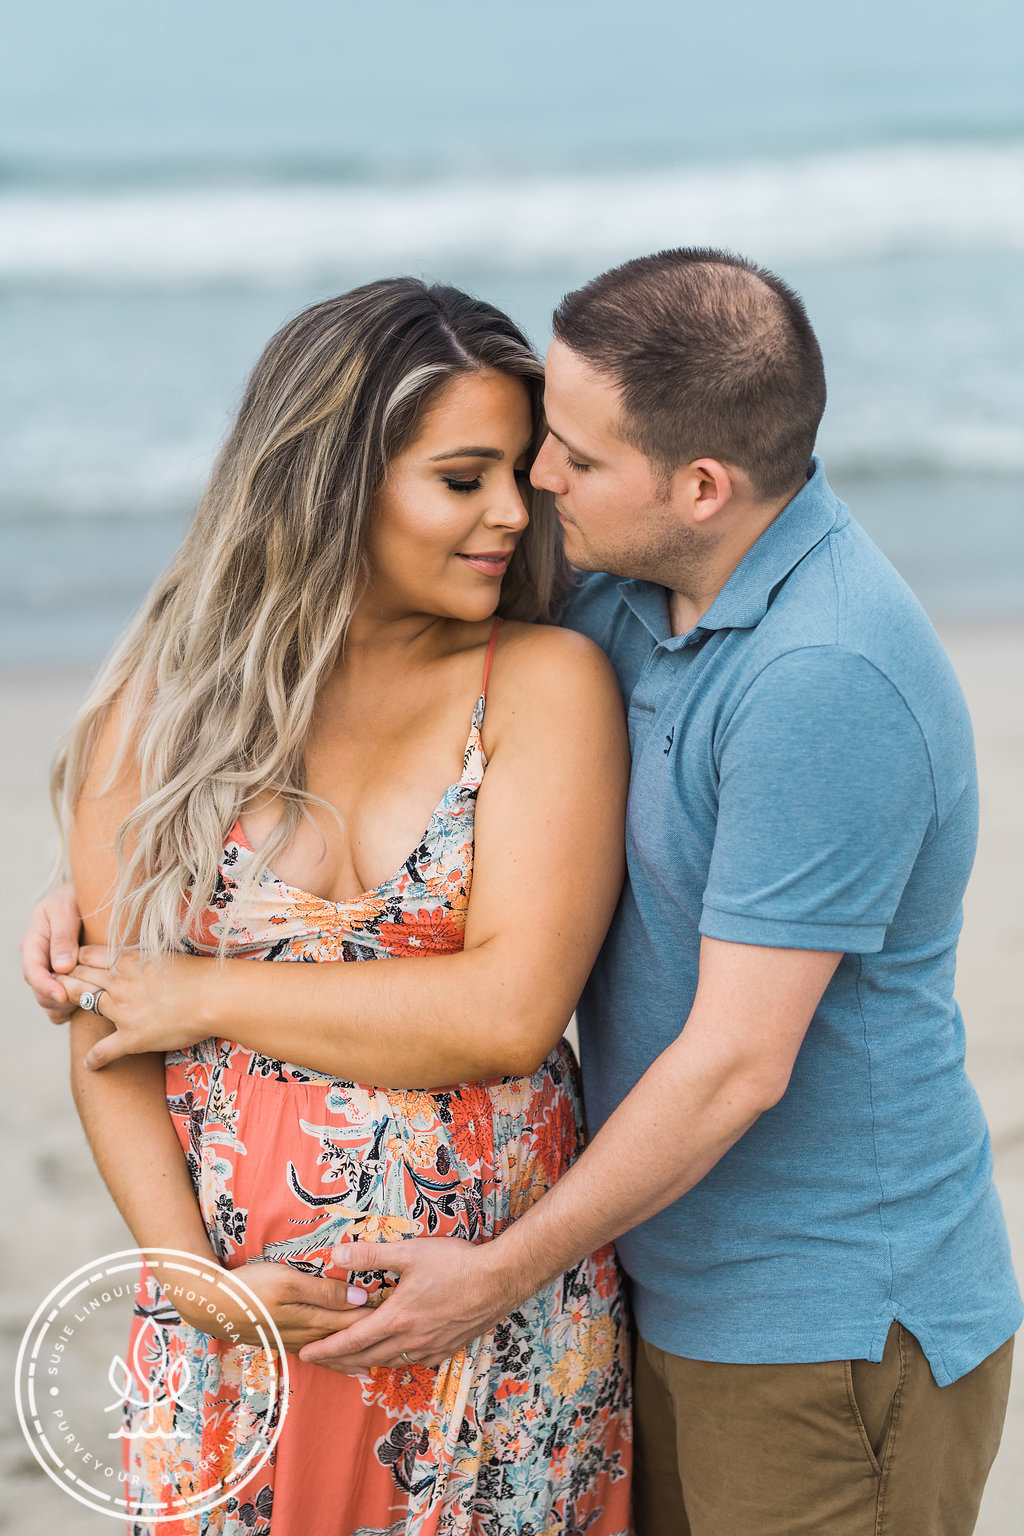 Susie Lindquist Photography | Maternity Photography Kure Beach NC | Babymoon in Wrightsville Beach NC | Babymoon in Wilmington NC